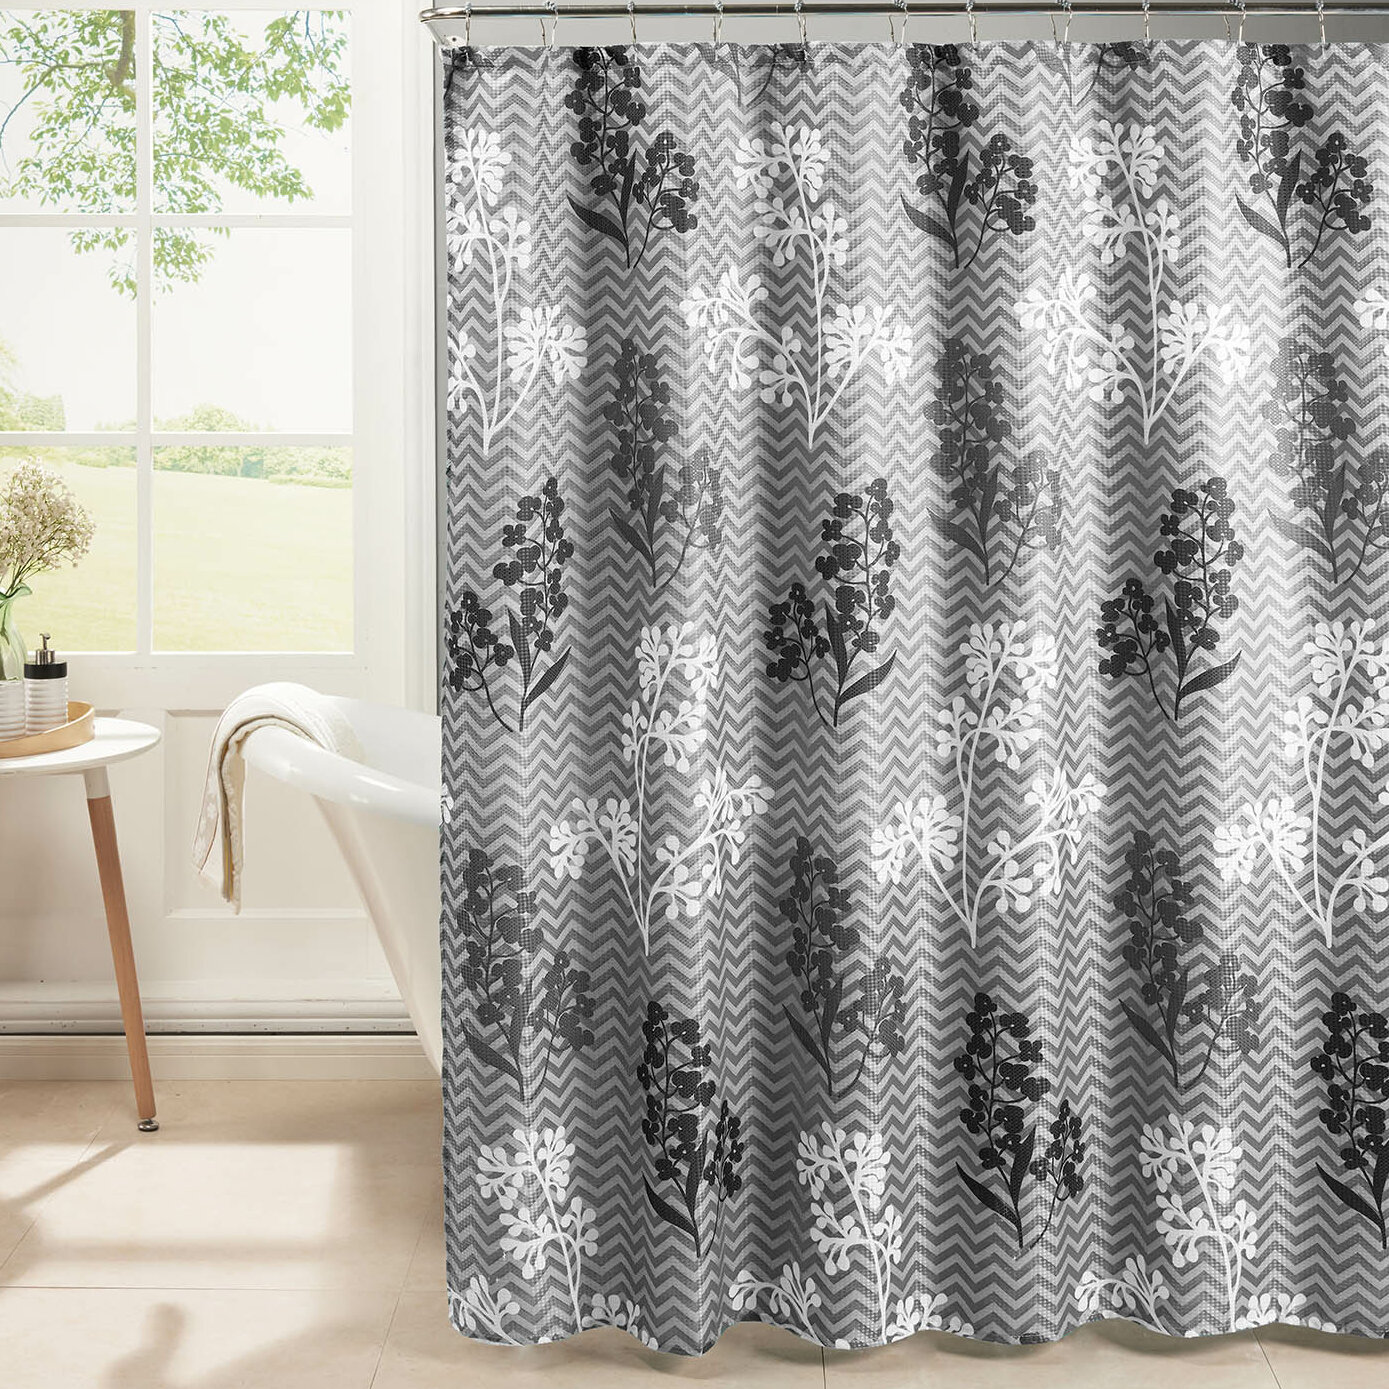 bed weave fabric bath textured pdx bathroom floral studio oxford wayfair set shower reviews curtain